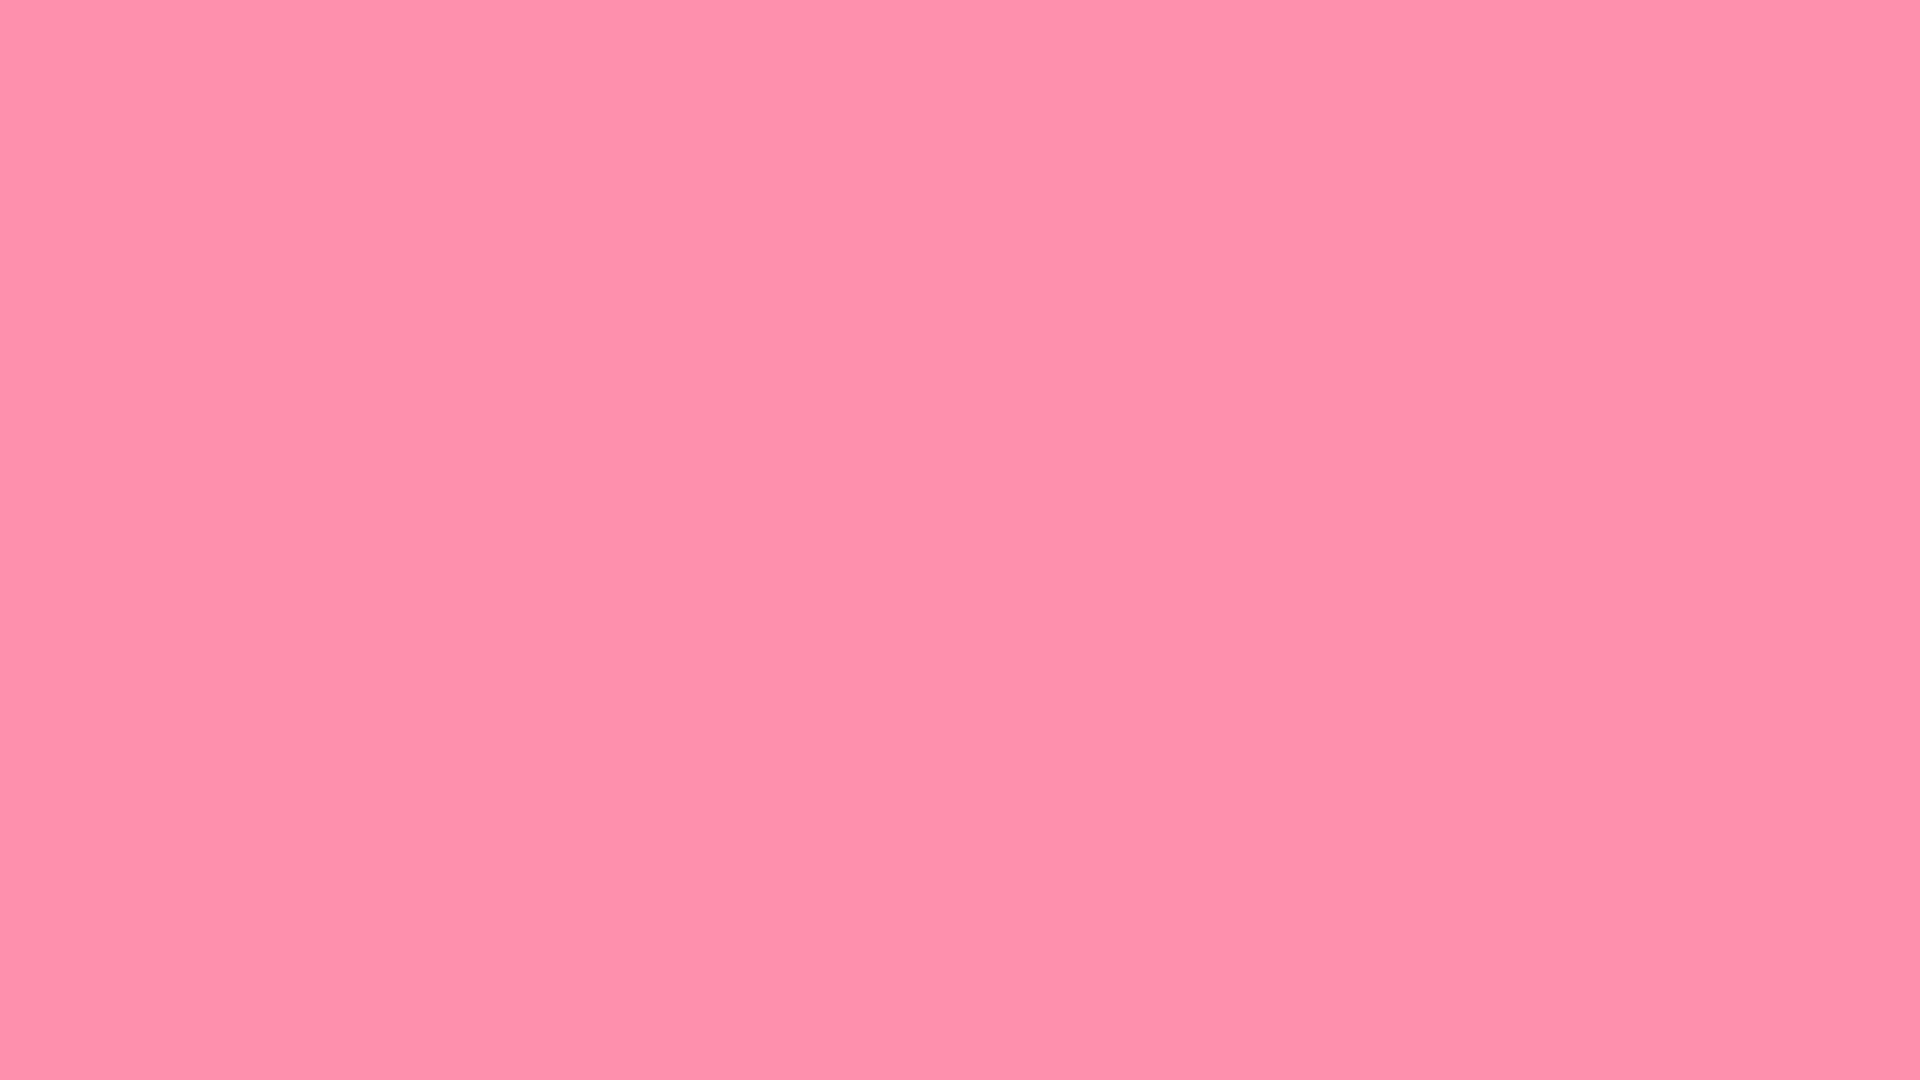 Baker-Miller Pink - Wallpaper, High Definition, High ...